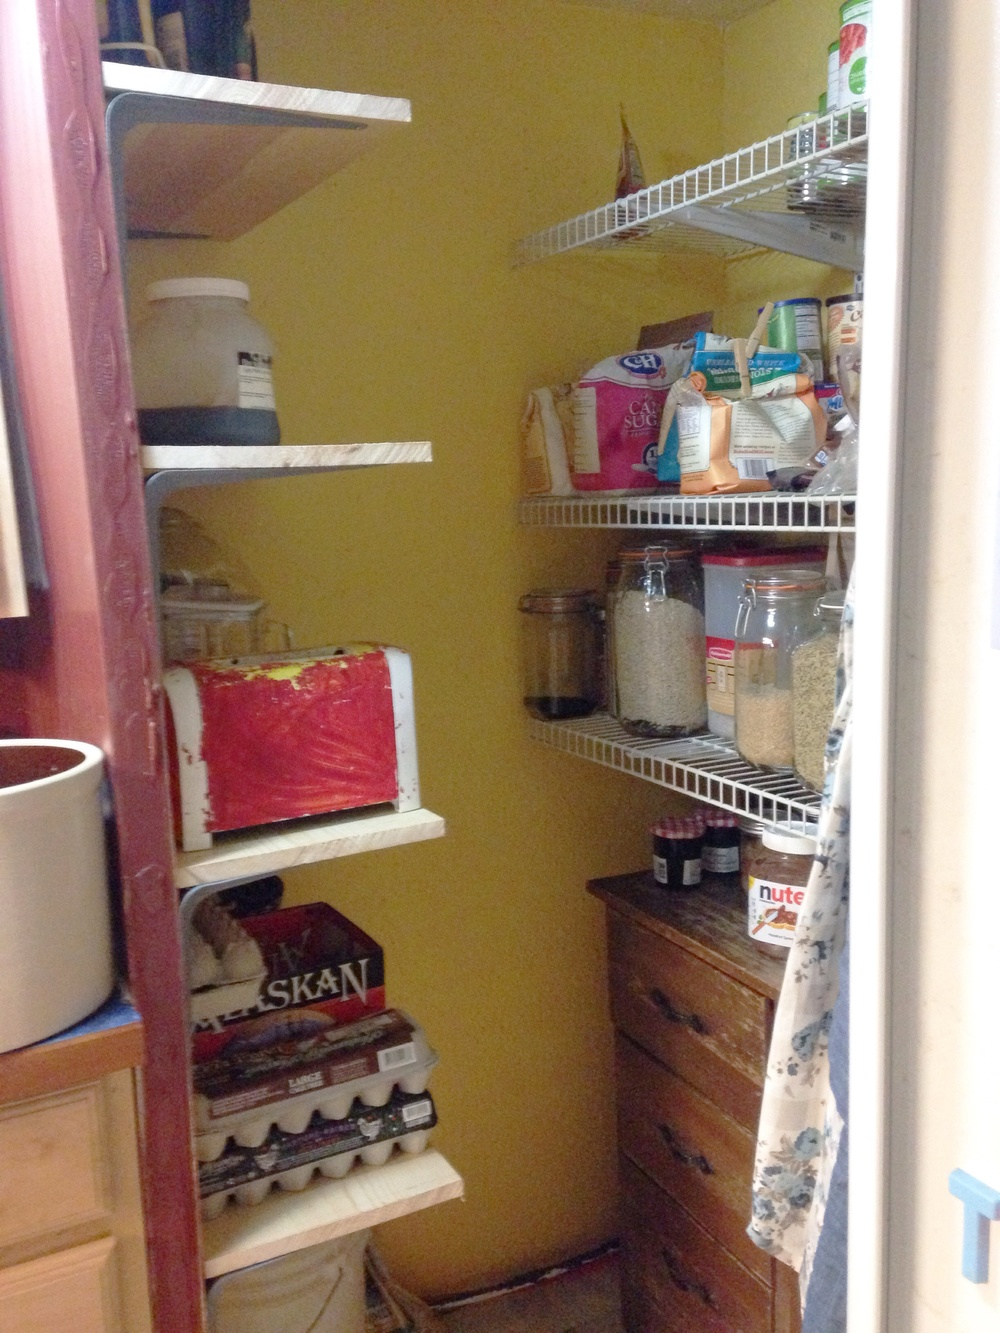 Pantry Shelves : There's a place for things now!  No digging through ridiculous messy piles in cabinets to fish out the toaster, no more inaccessible blenders!